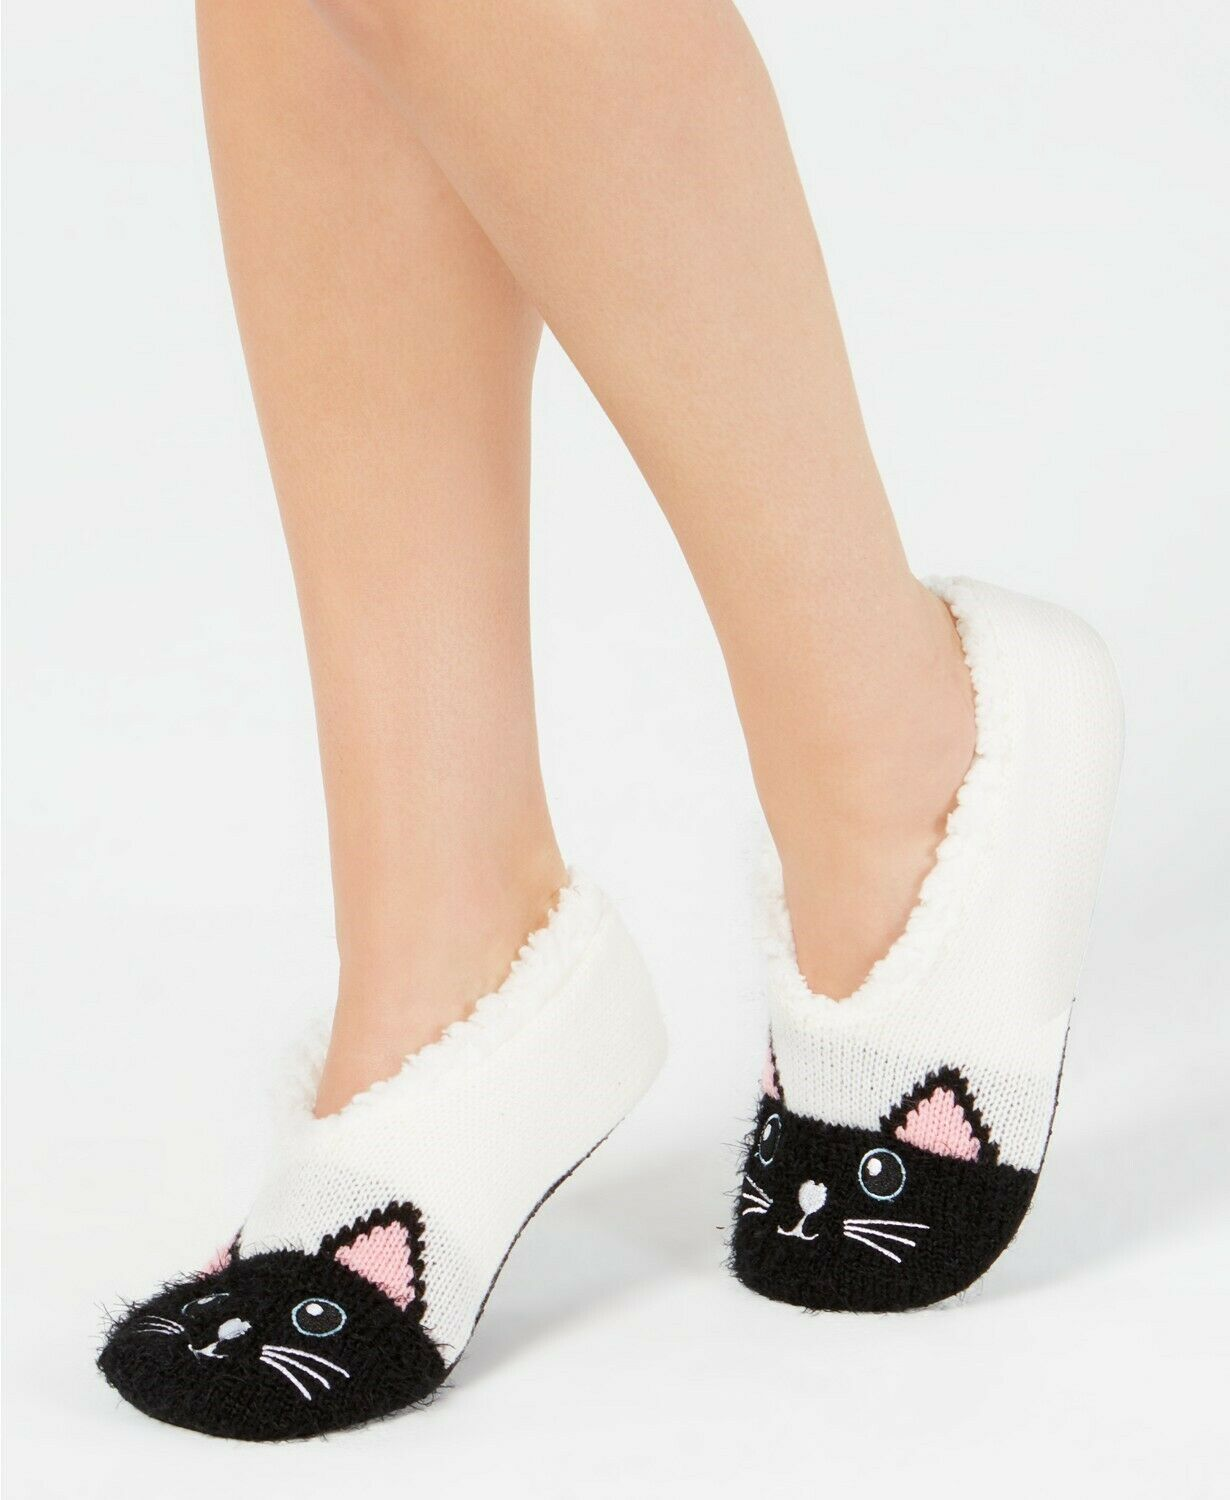 Charter Club Womens Cat Slipper Socks Ivory S/M - NWT